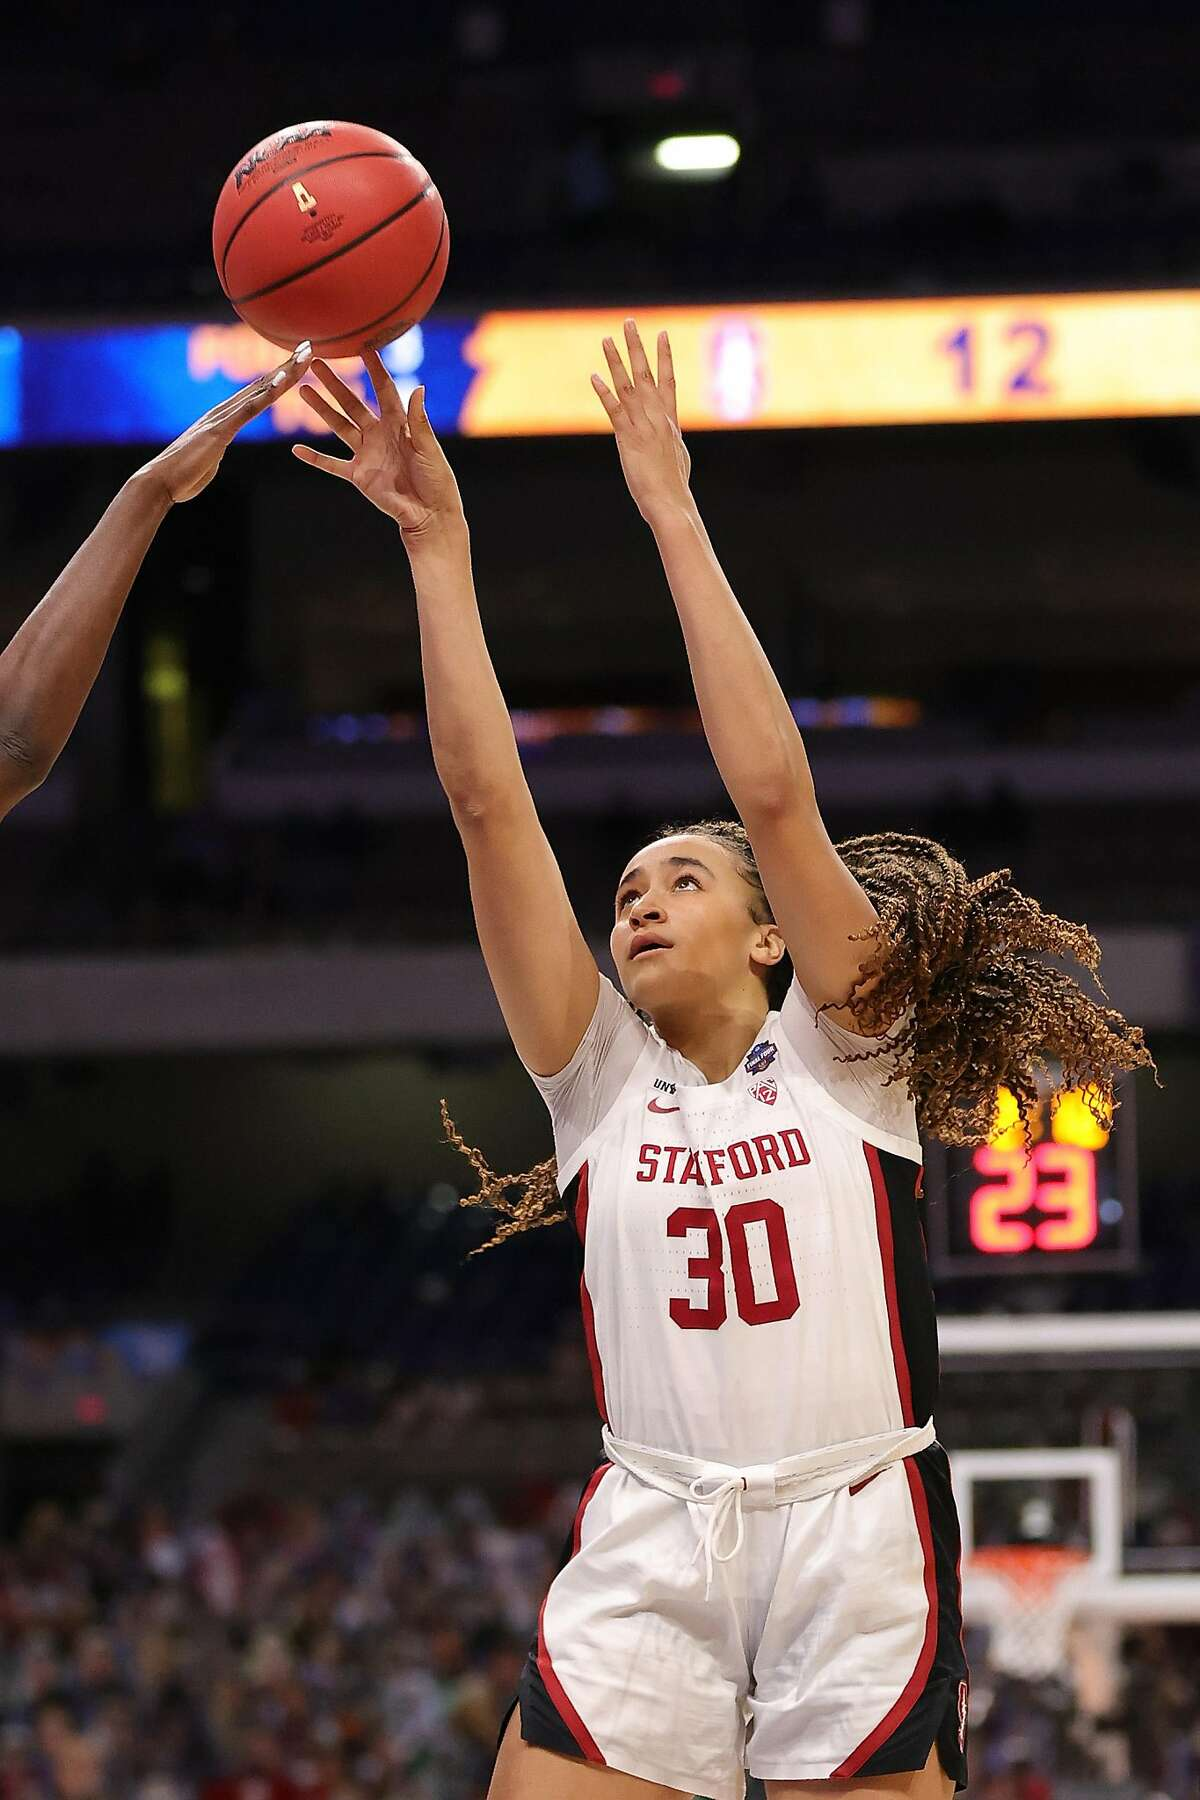 SAN ANTONIO, TEXAS - APRIL 02: Haley Jones #30 of the Stanford Cardinal attempts the shot against the South Carolina Gamecocks during the first half in the Final Four semifinal game of the 2021 NCAA Women's Basketball Tournament at the Alamodome on April 02, 2021 in San Antonio, Texas. (Photo by Carmen Mandato/Getty Images)